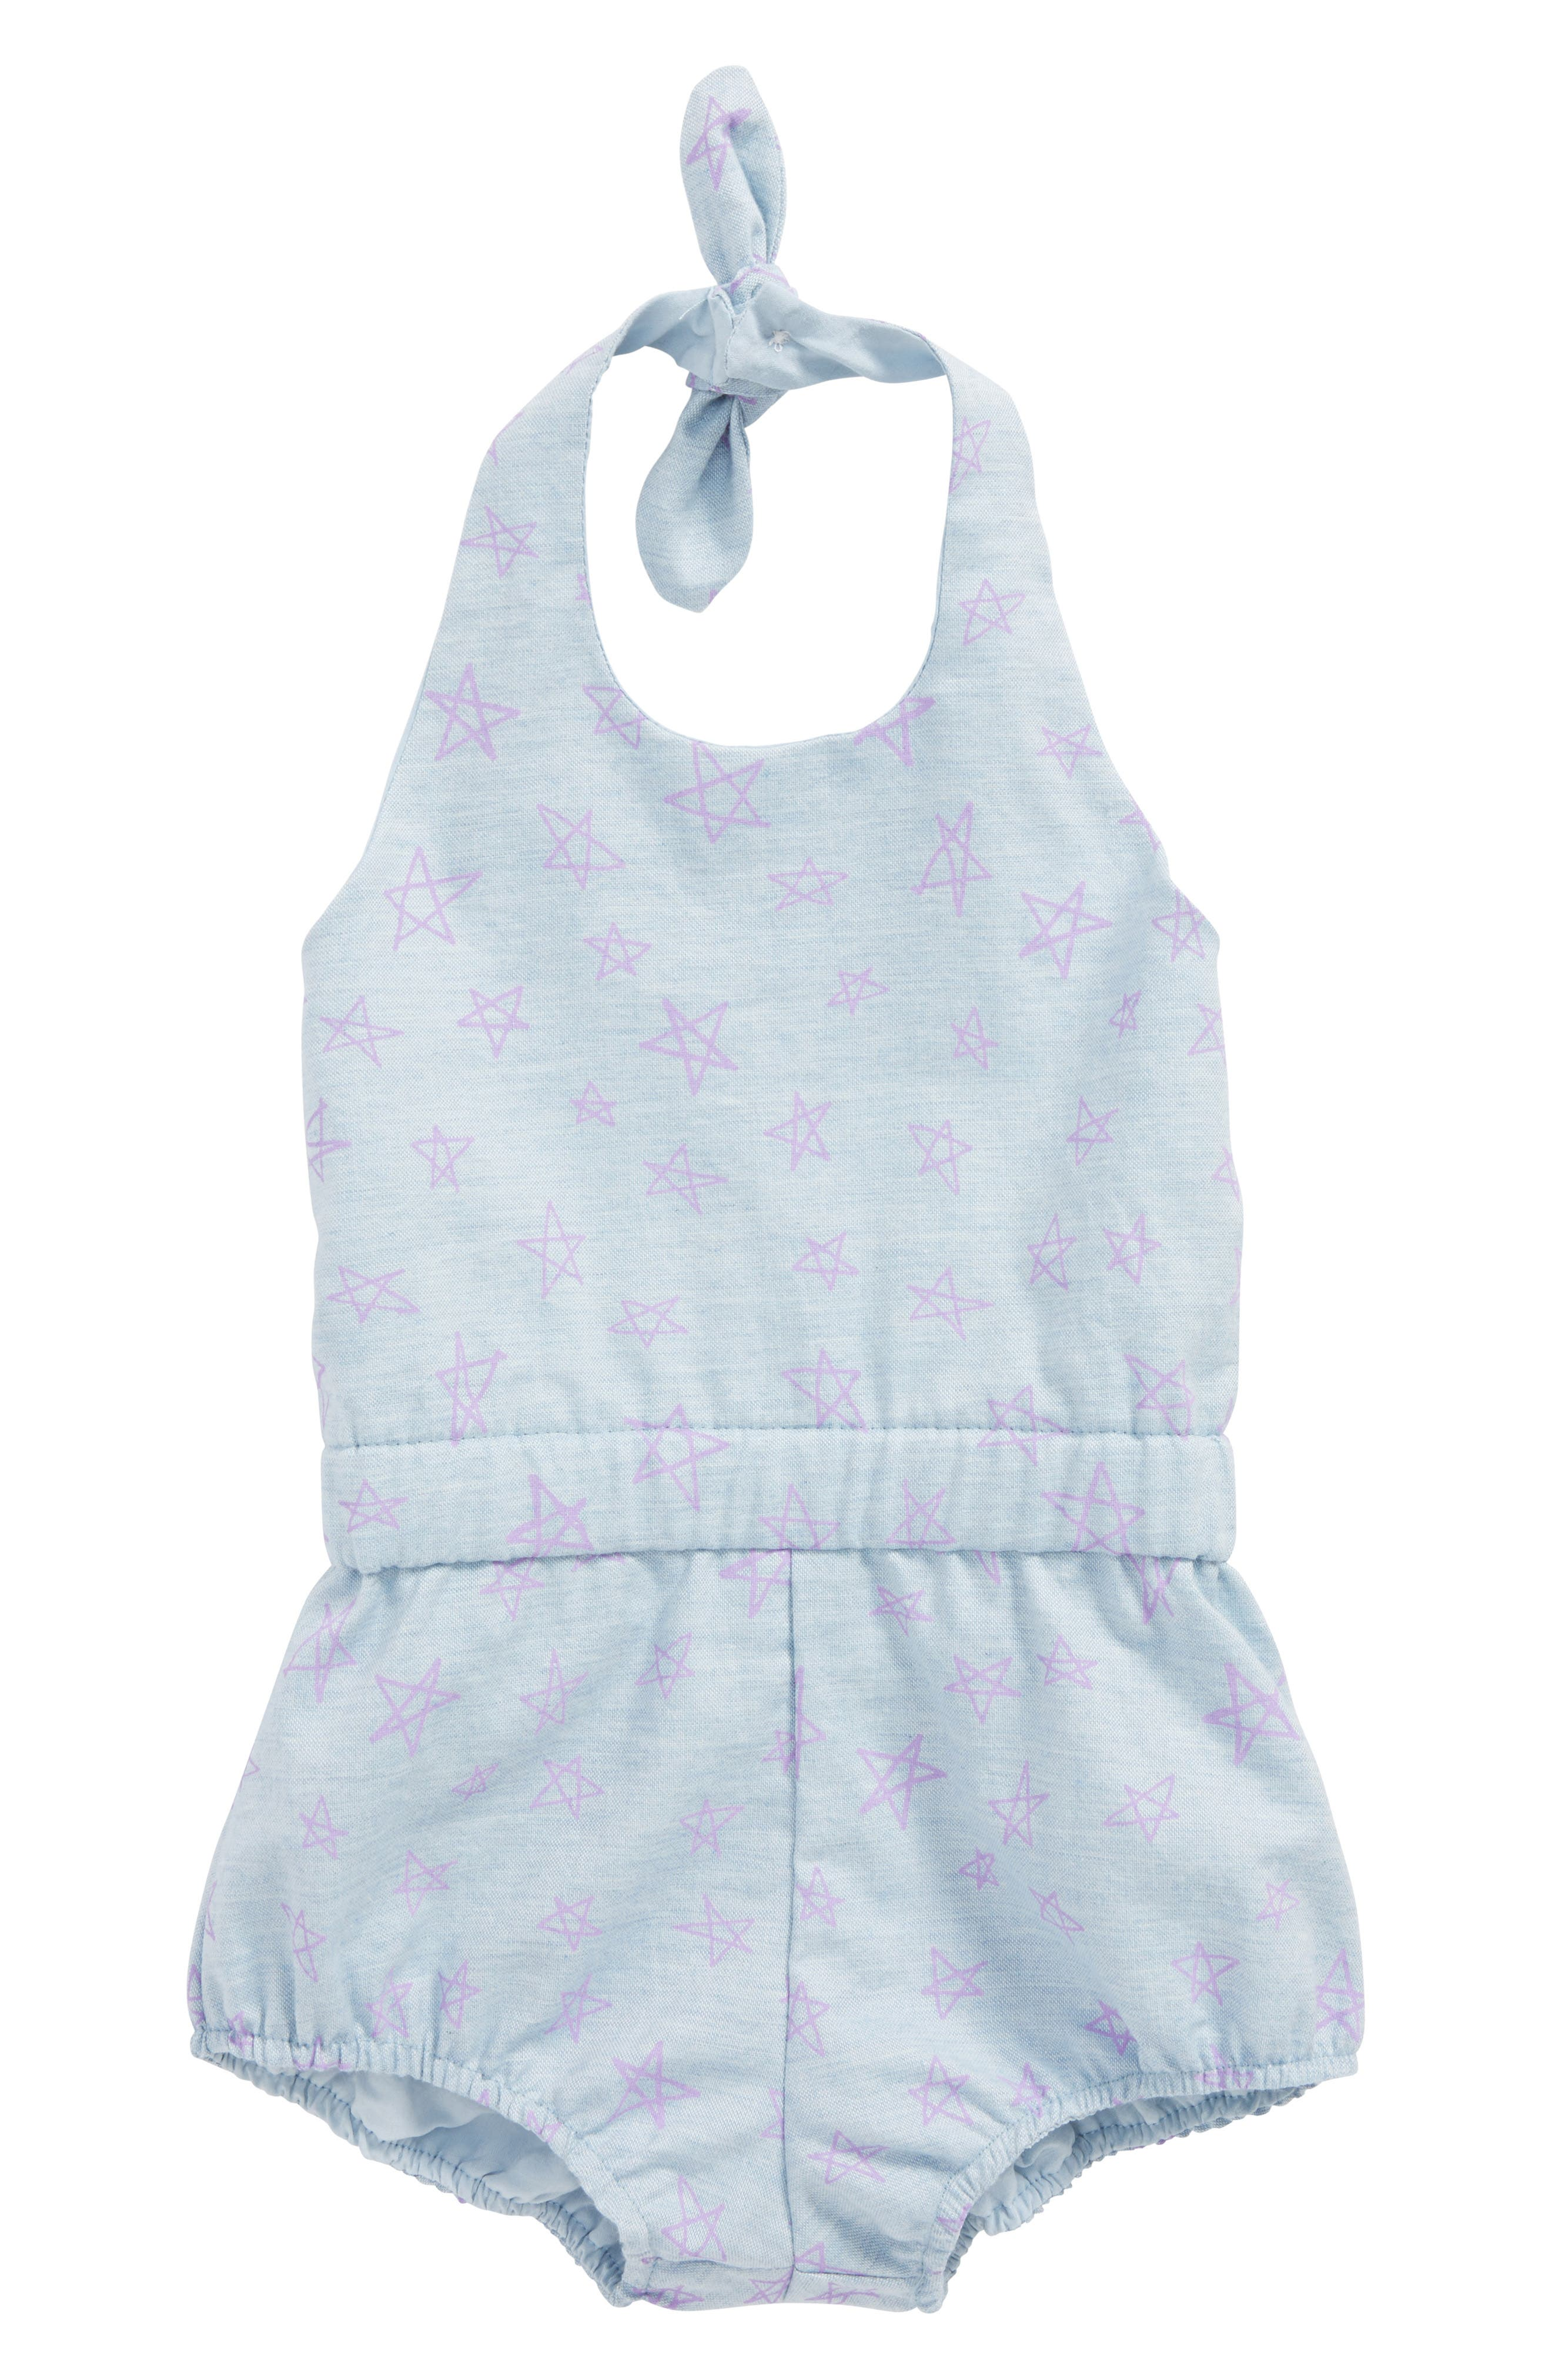 Layla Star Chambray Romper,                         Main,                         color, Chambray With Purple Stars